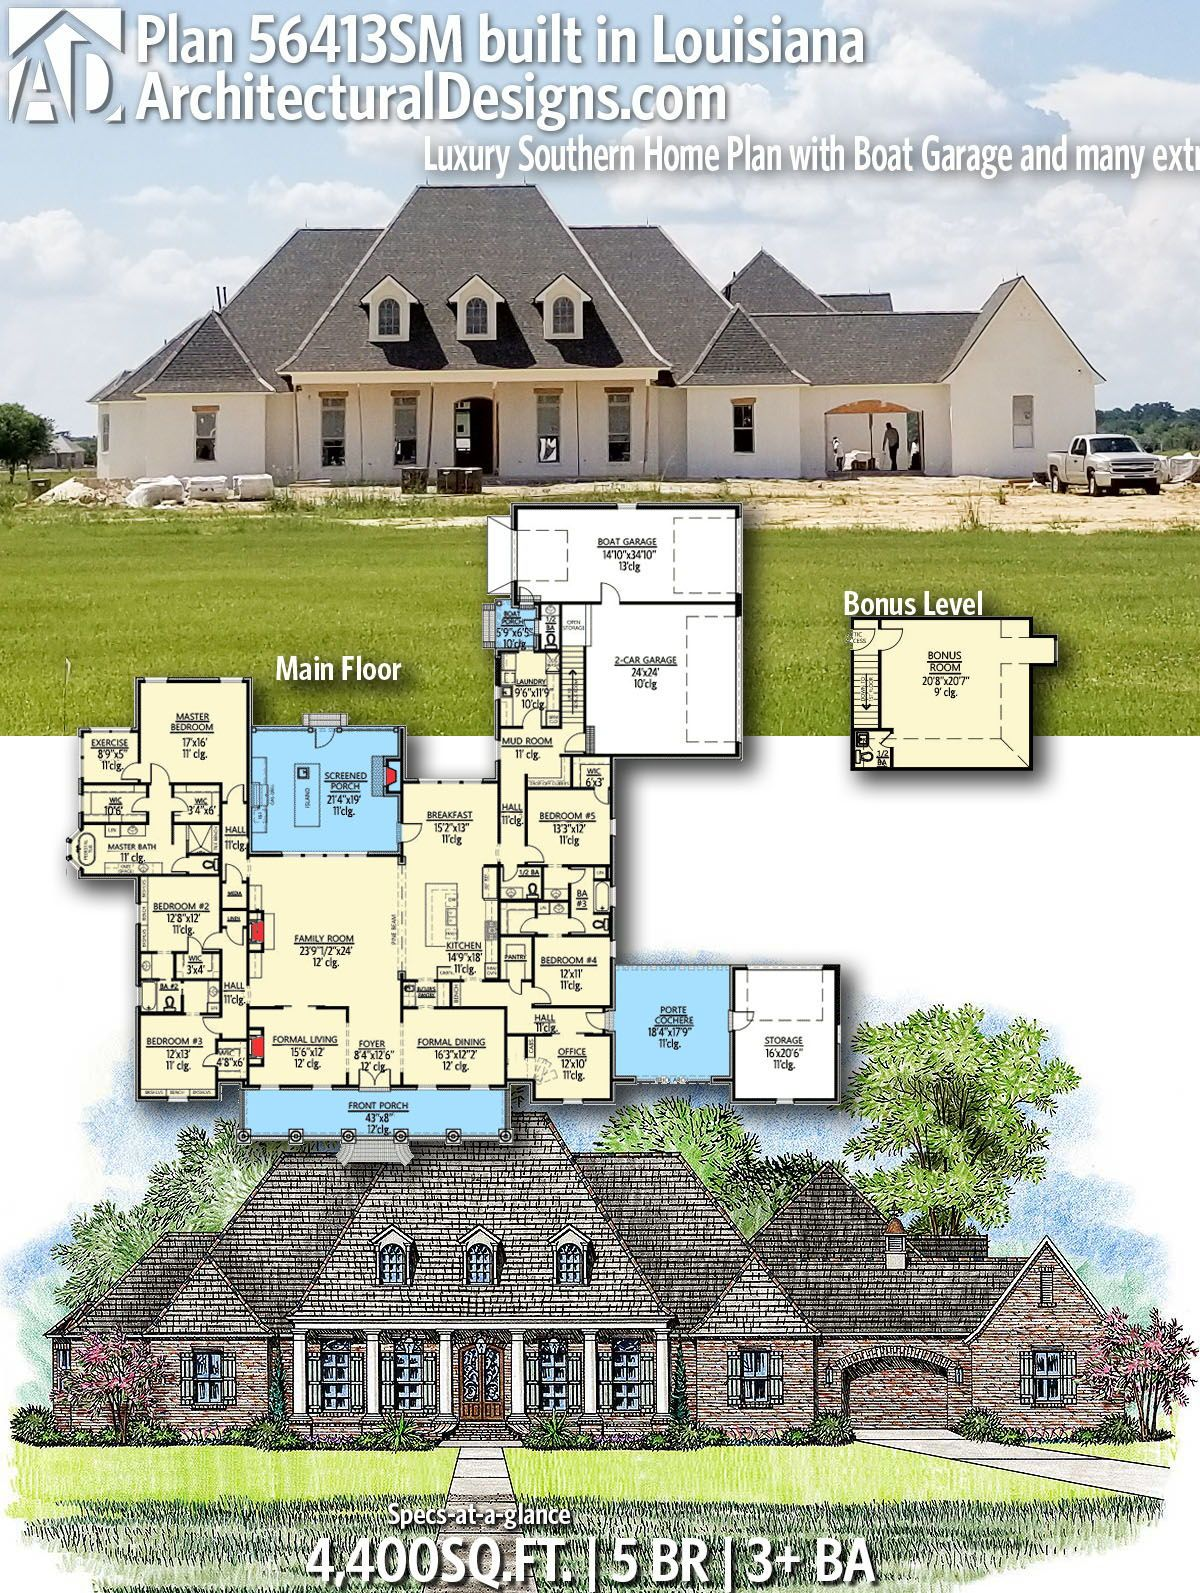 Plan 56413sm Luxury Southern Home Plan With Boat Garage And Many Extras Southern House Plans Acadian House Plans House Plans